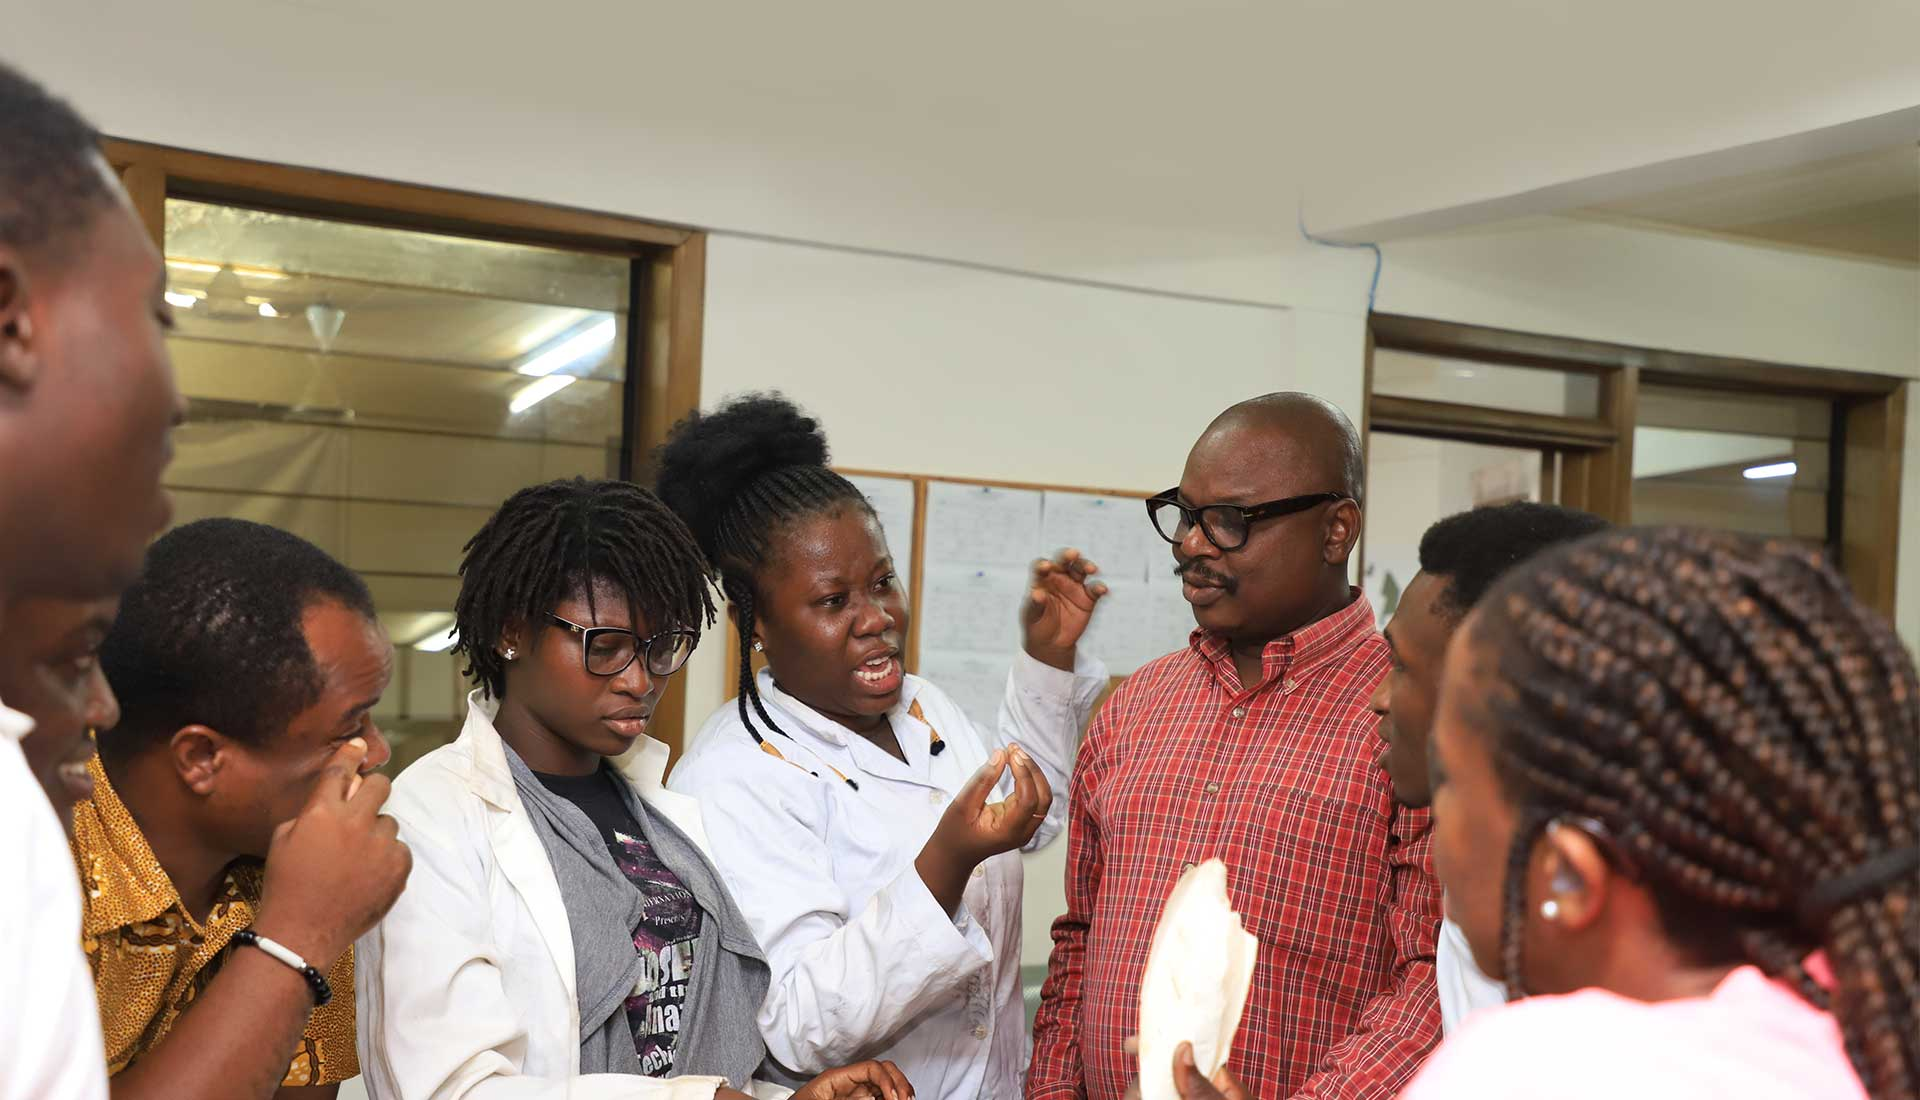 Students interacting with lecturers at the workshop